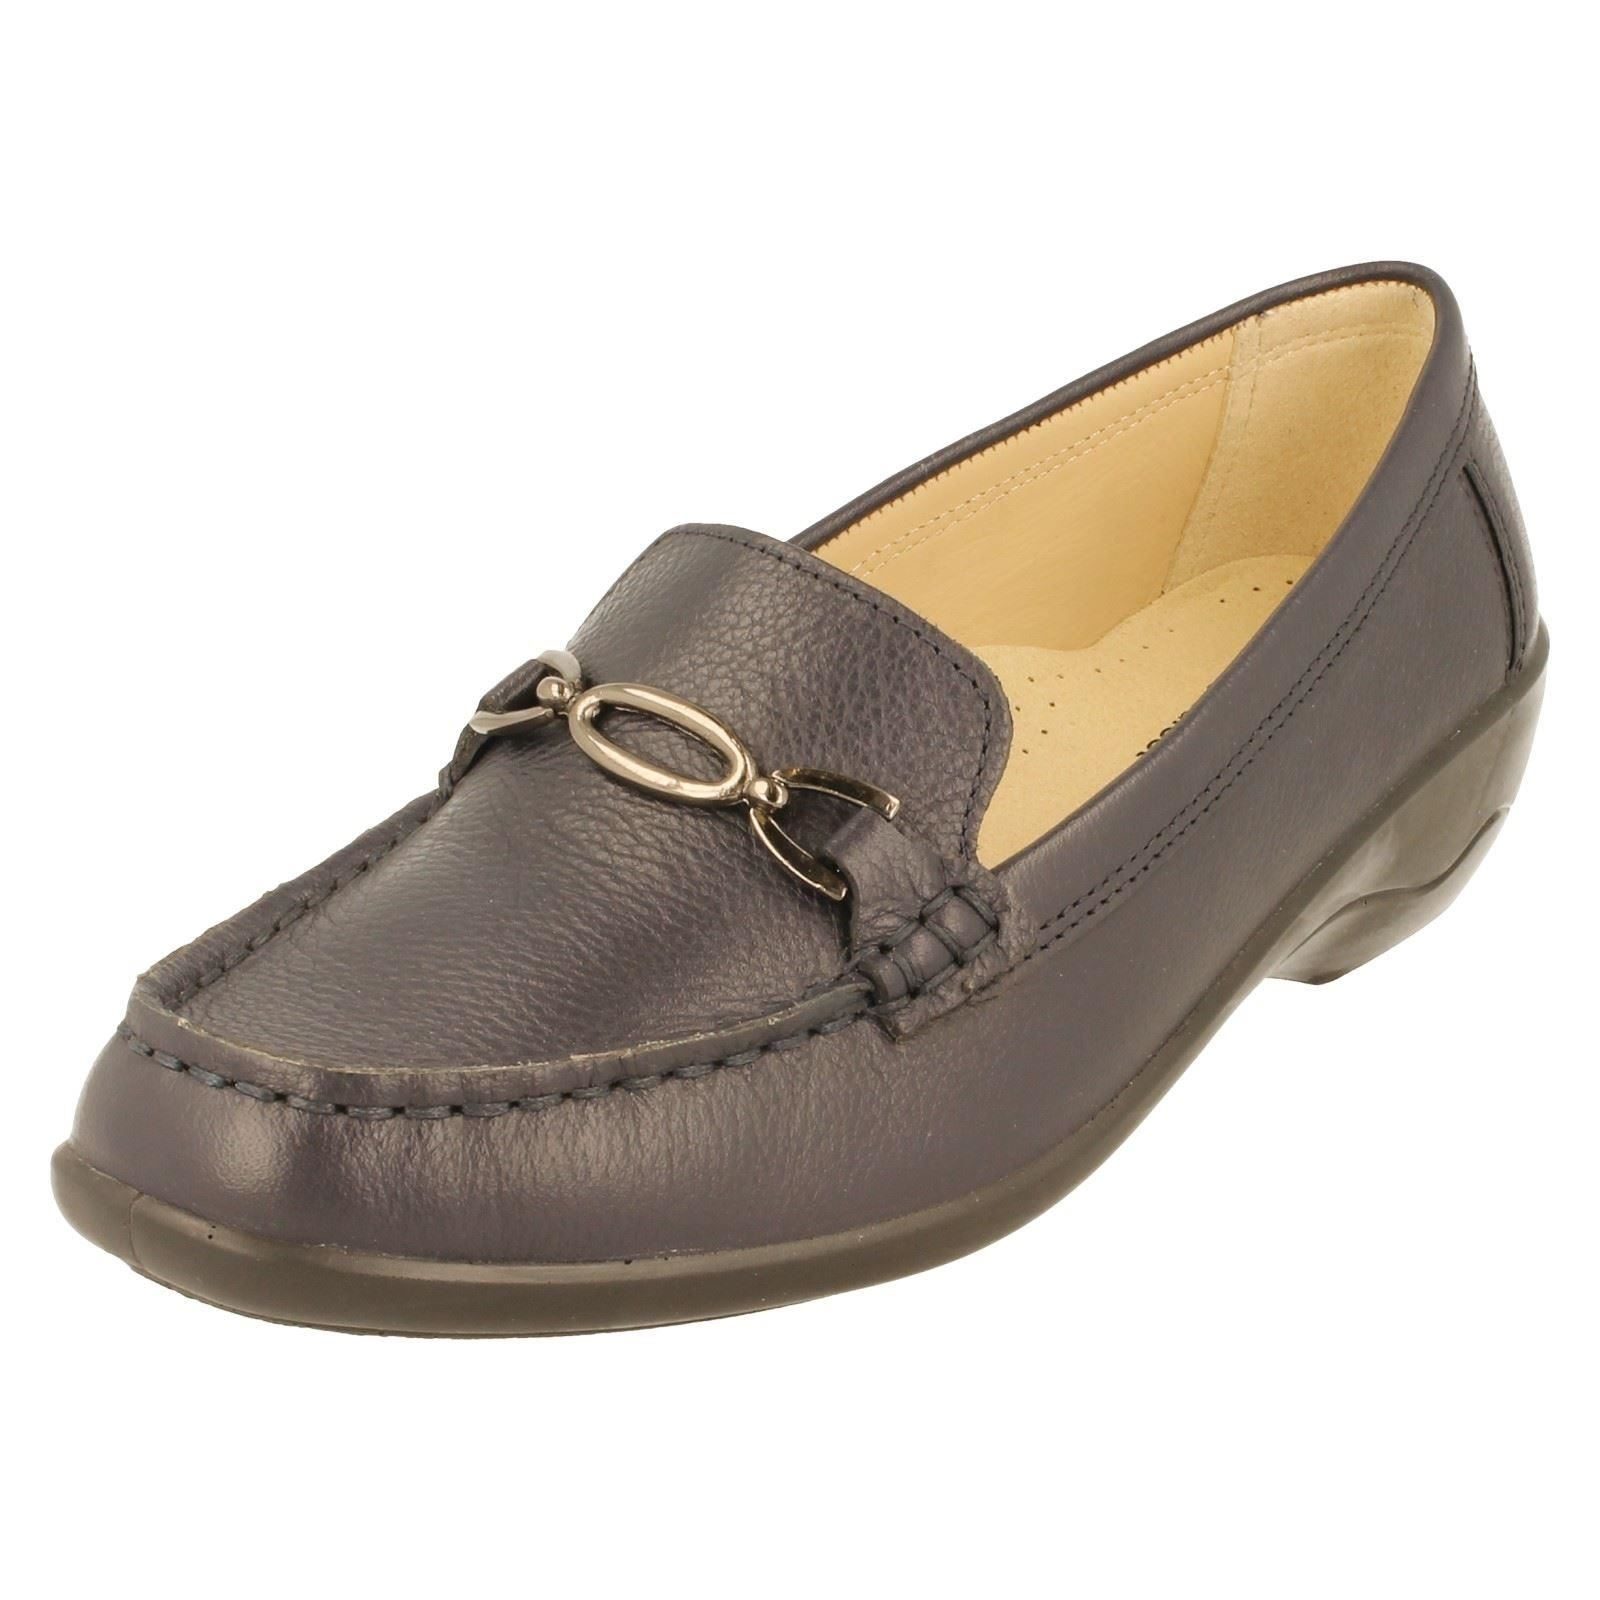 3672c6c5aa4 Ladies Padders Ellen Leather Slip Shoes EE Wide Width Fitting UK 4 Navy.  About this product. Picture 1 of 11  Picture 2 of 11 ...